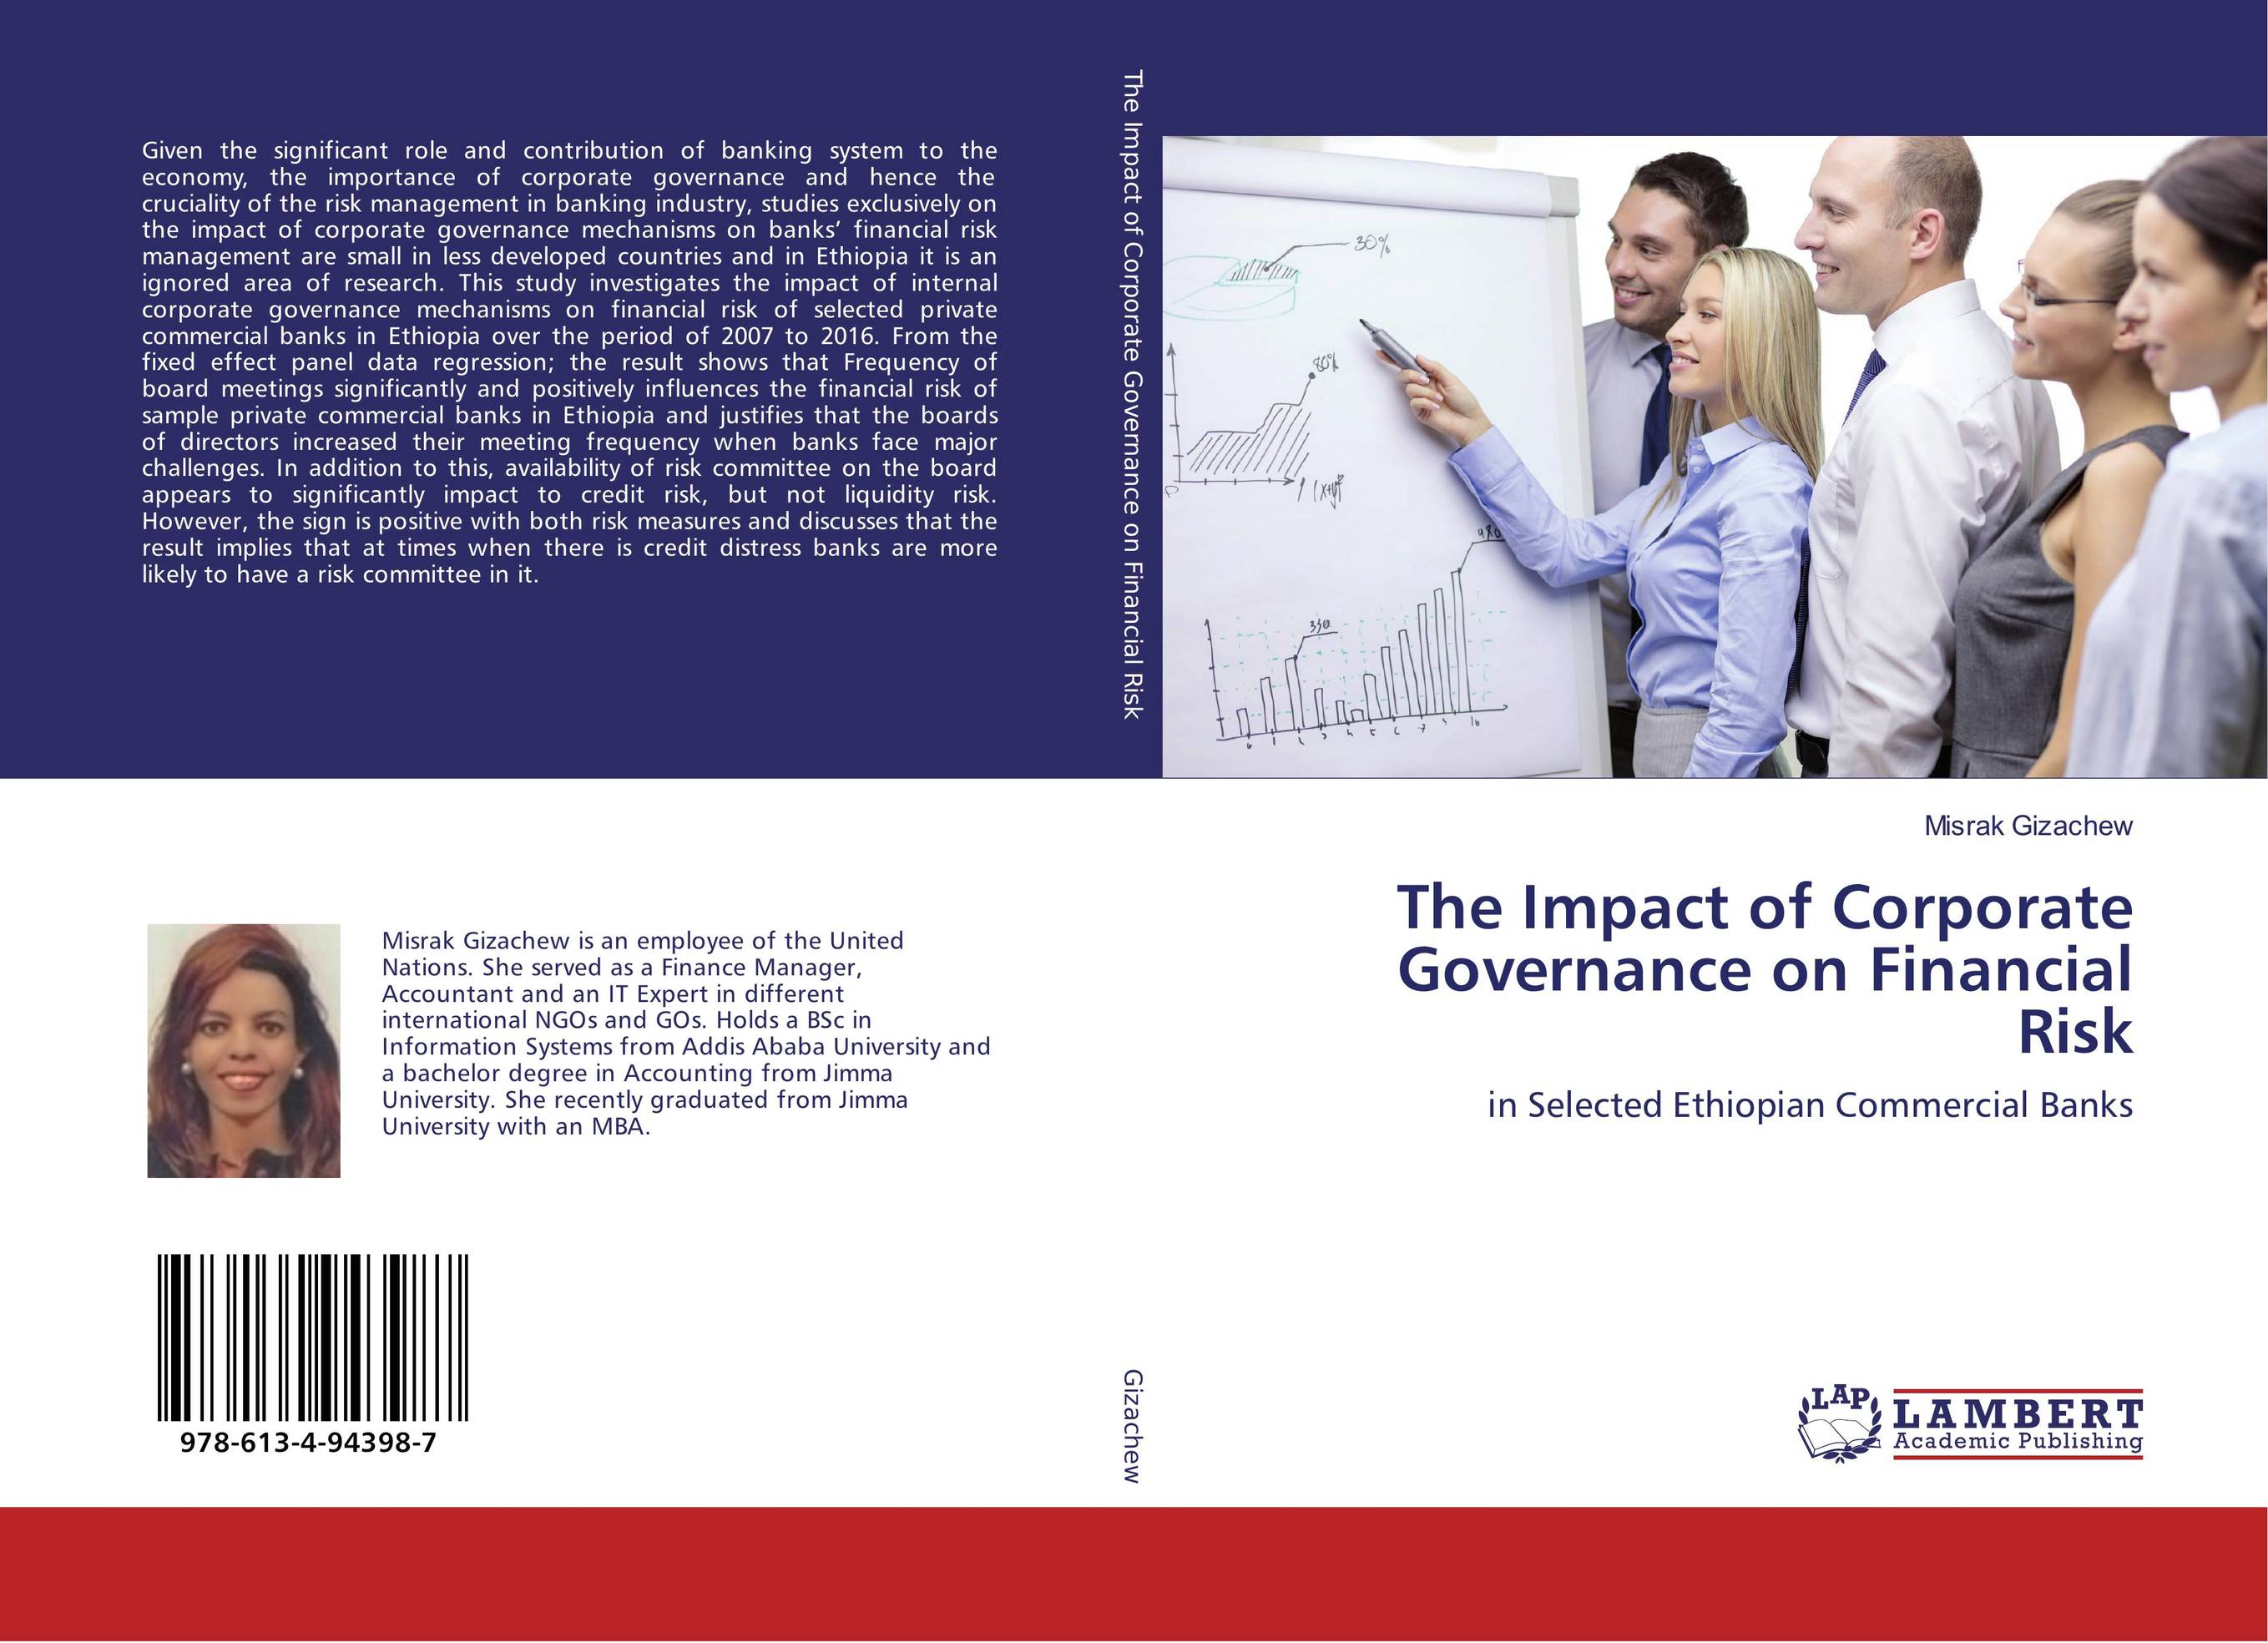 impact of financial system on the Financial system abuse has negative impact on a country's macroeconomic performance which may cause welfare losses the performance of financial markets depends greatly on the assumptions that high professional, legal, and ethical standards are respected.